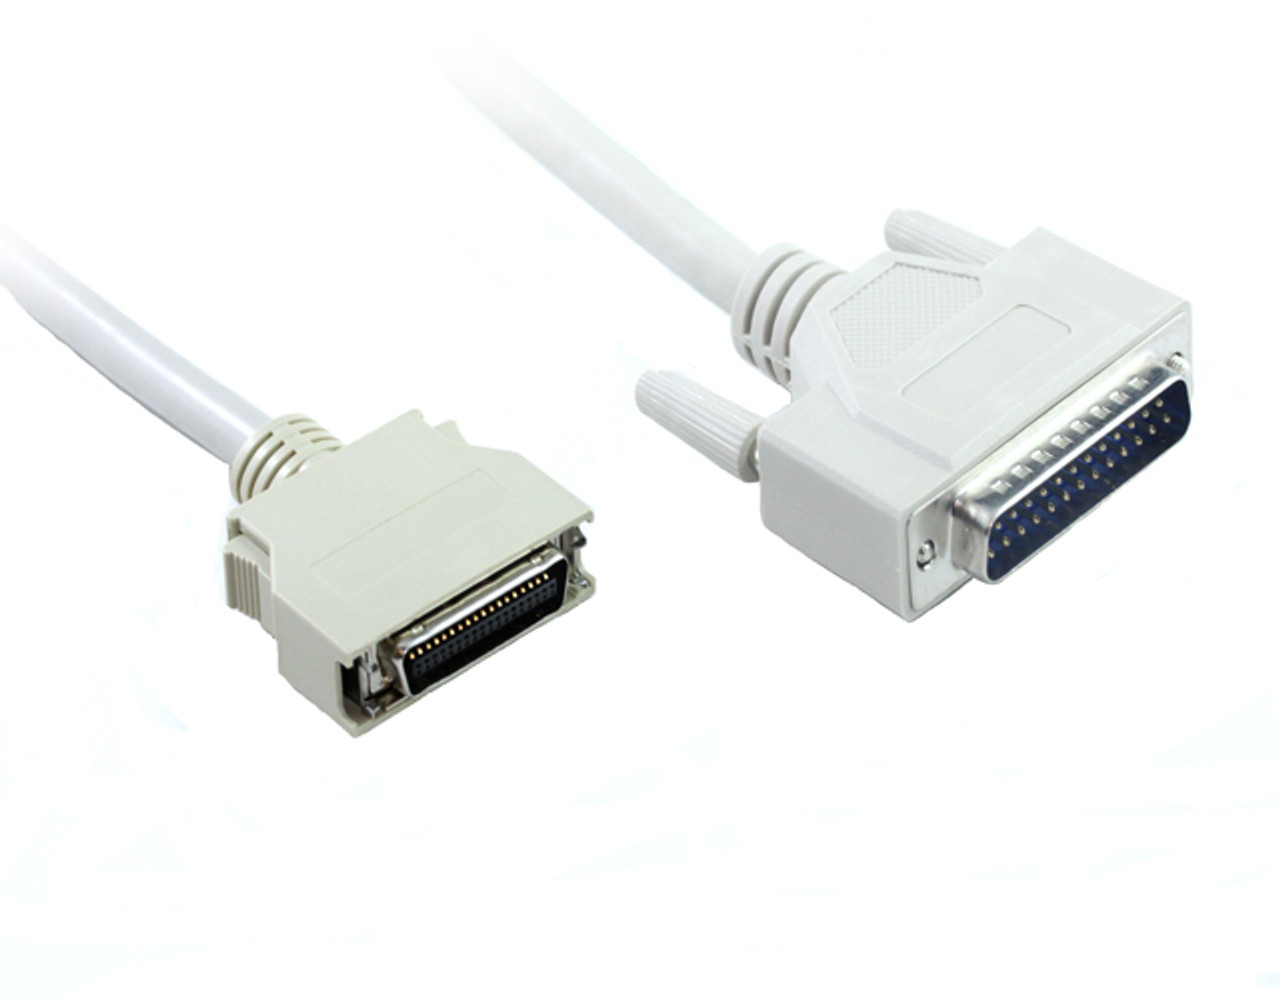 Product image for 2M IEEE1284 DB25M/HPC36M Printer Cable | CX Computer Superstore